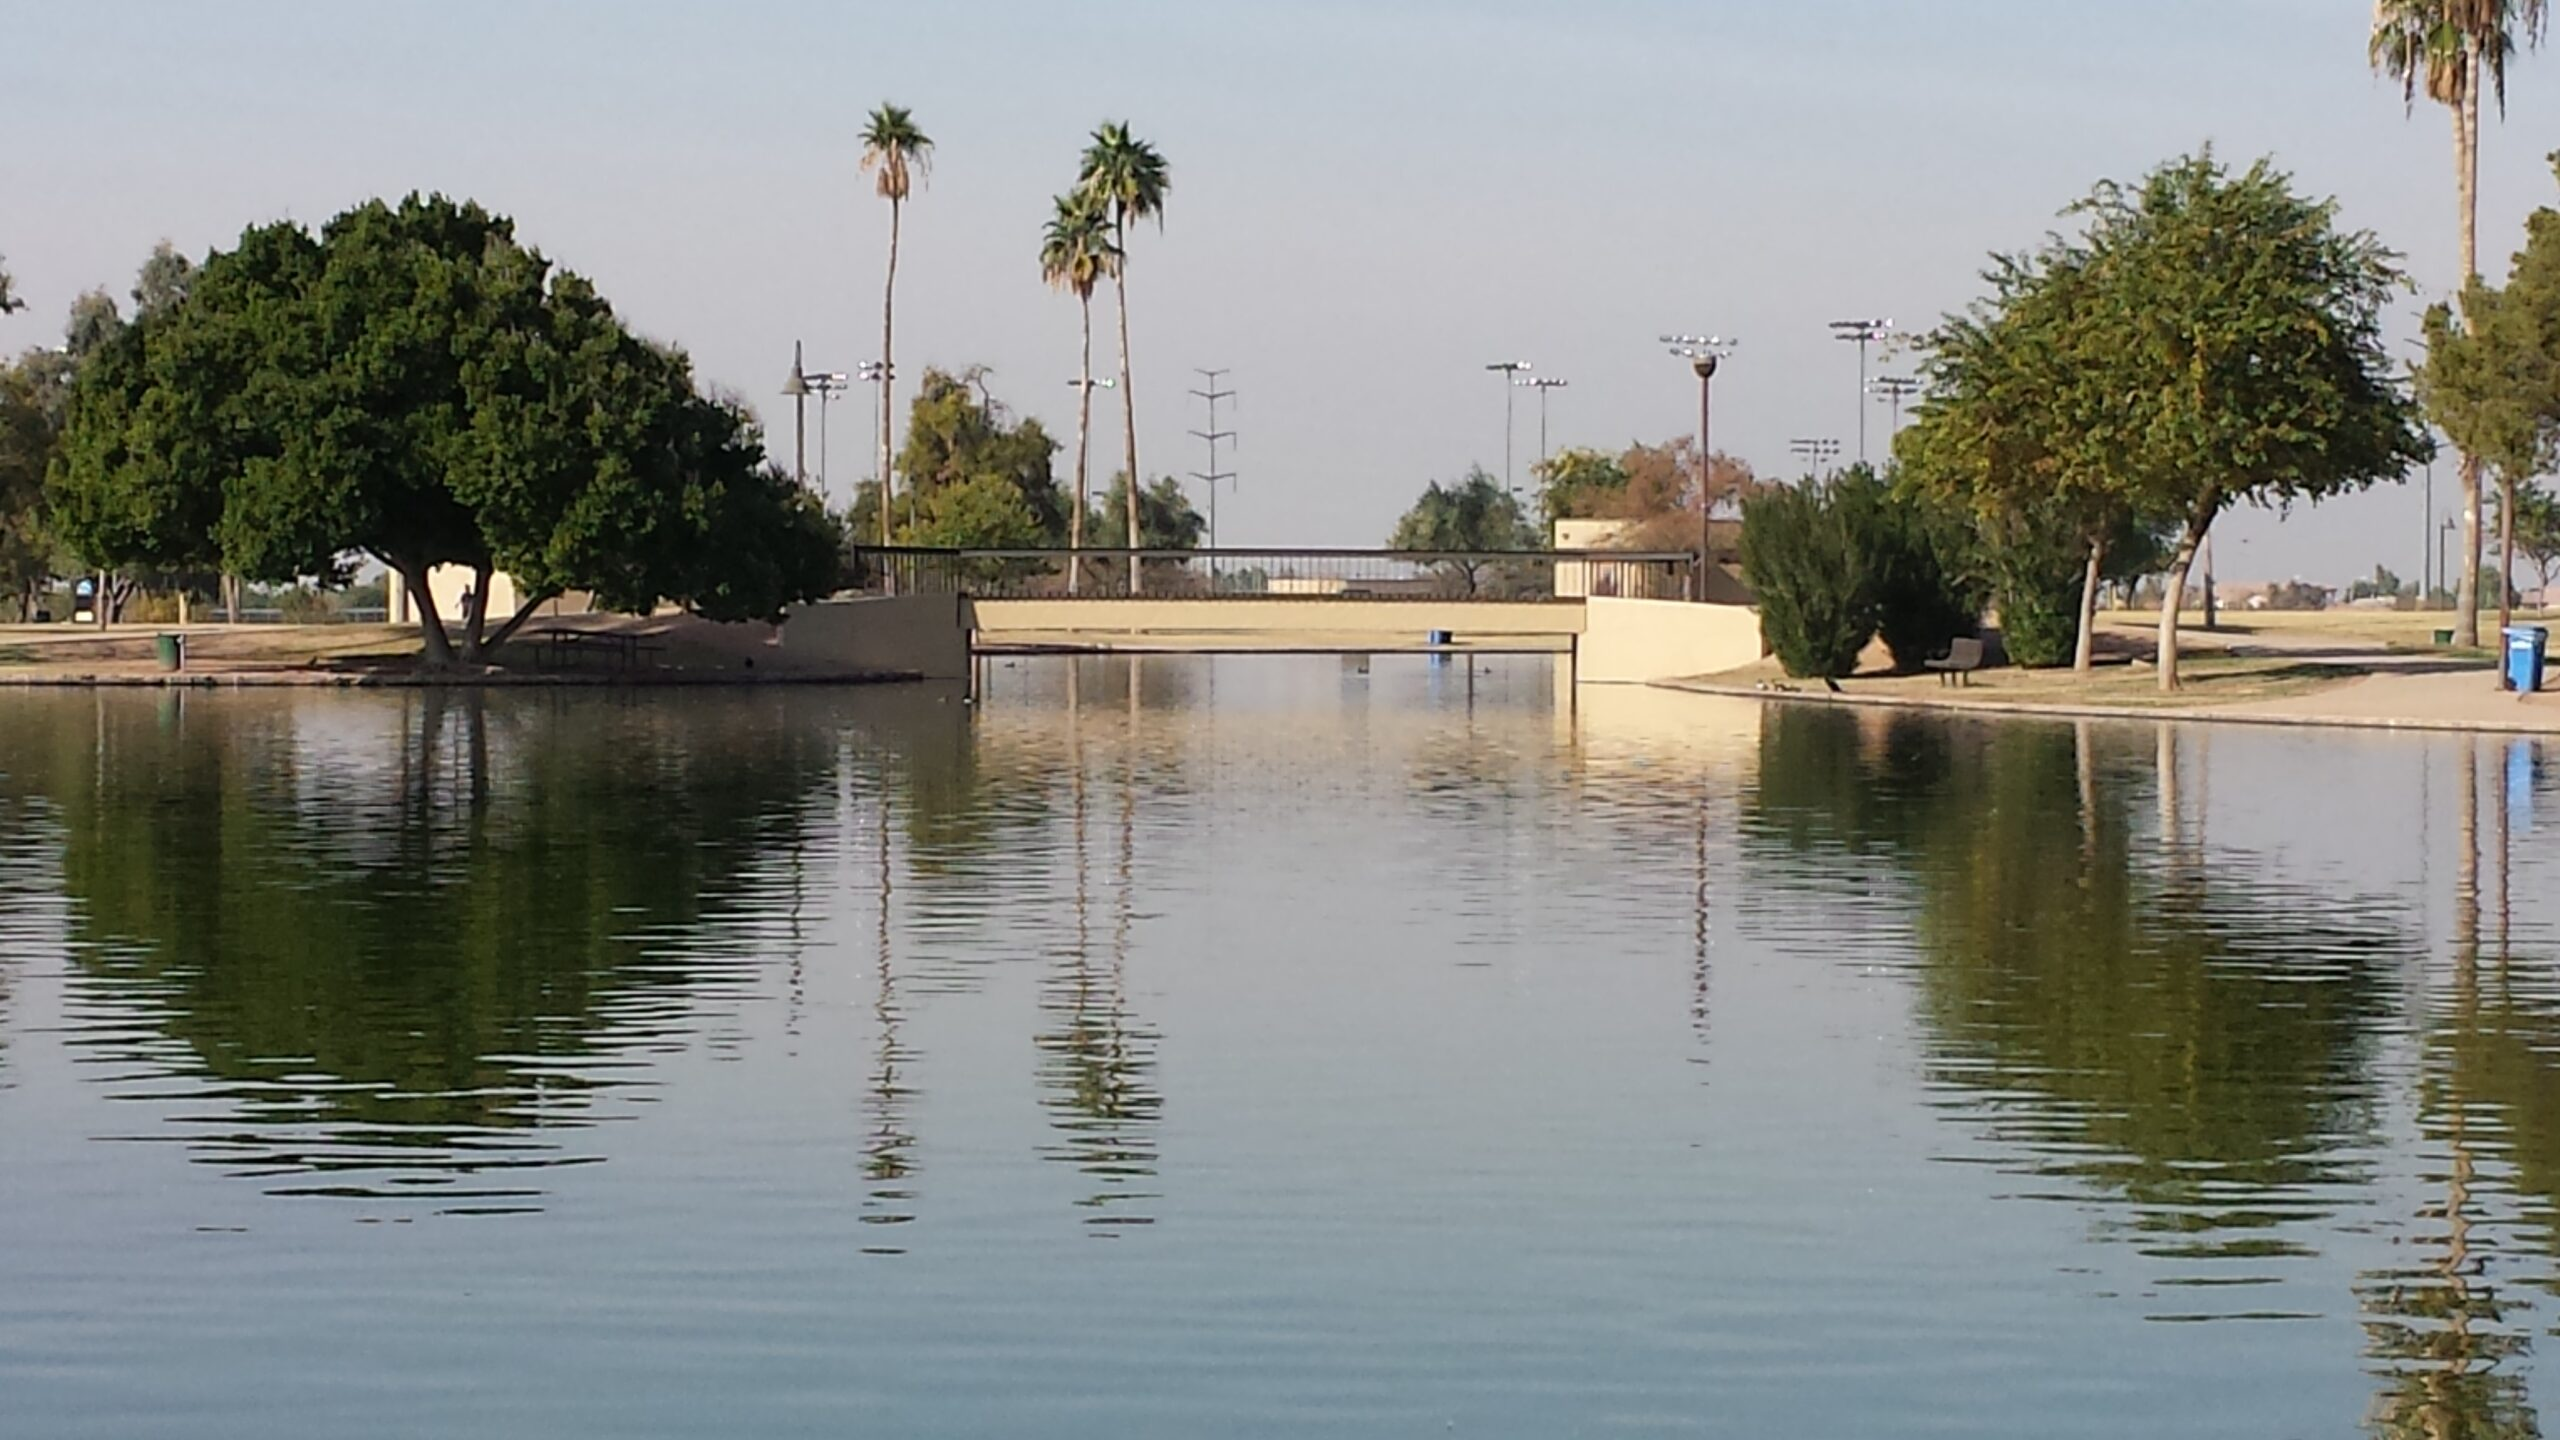 Cesar Chavez Park in Laveen is a local favorite for Laveen residents with a beautiful lake, soccer fields, skate park, dog park, fishing and more. (Photo © AZ Media Maven, LLC)